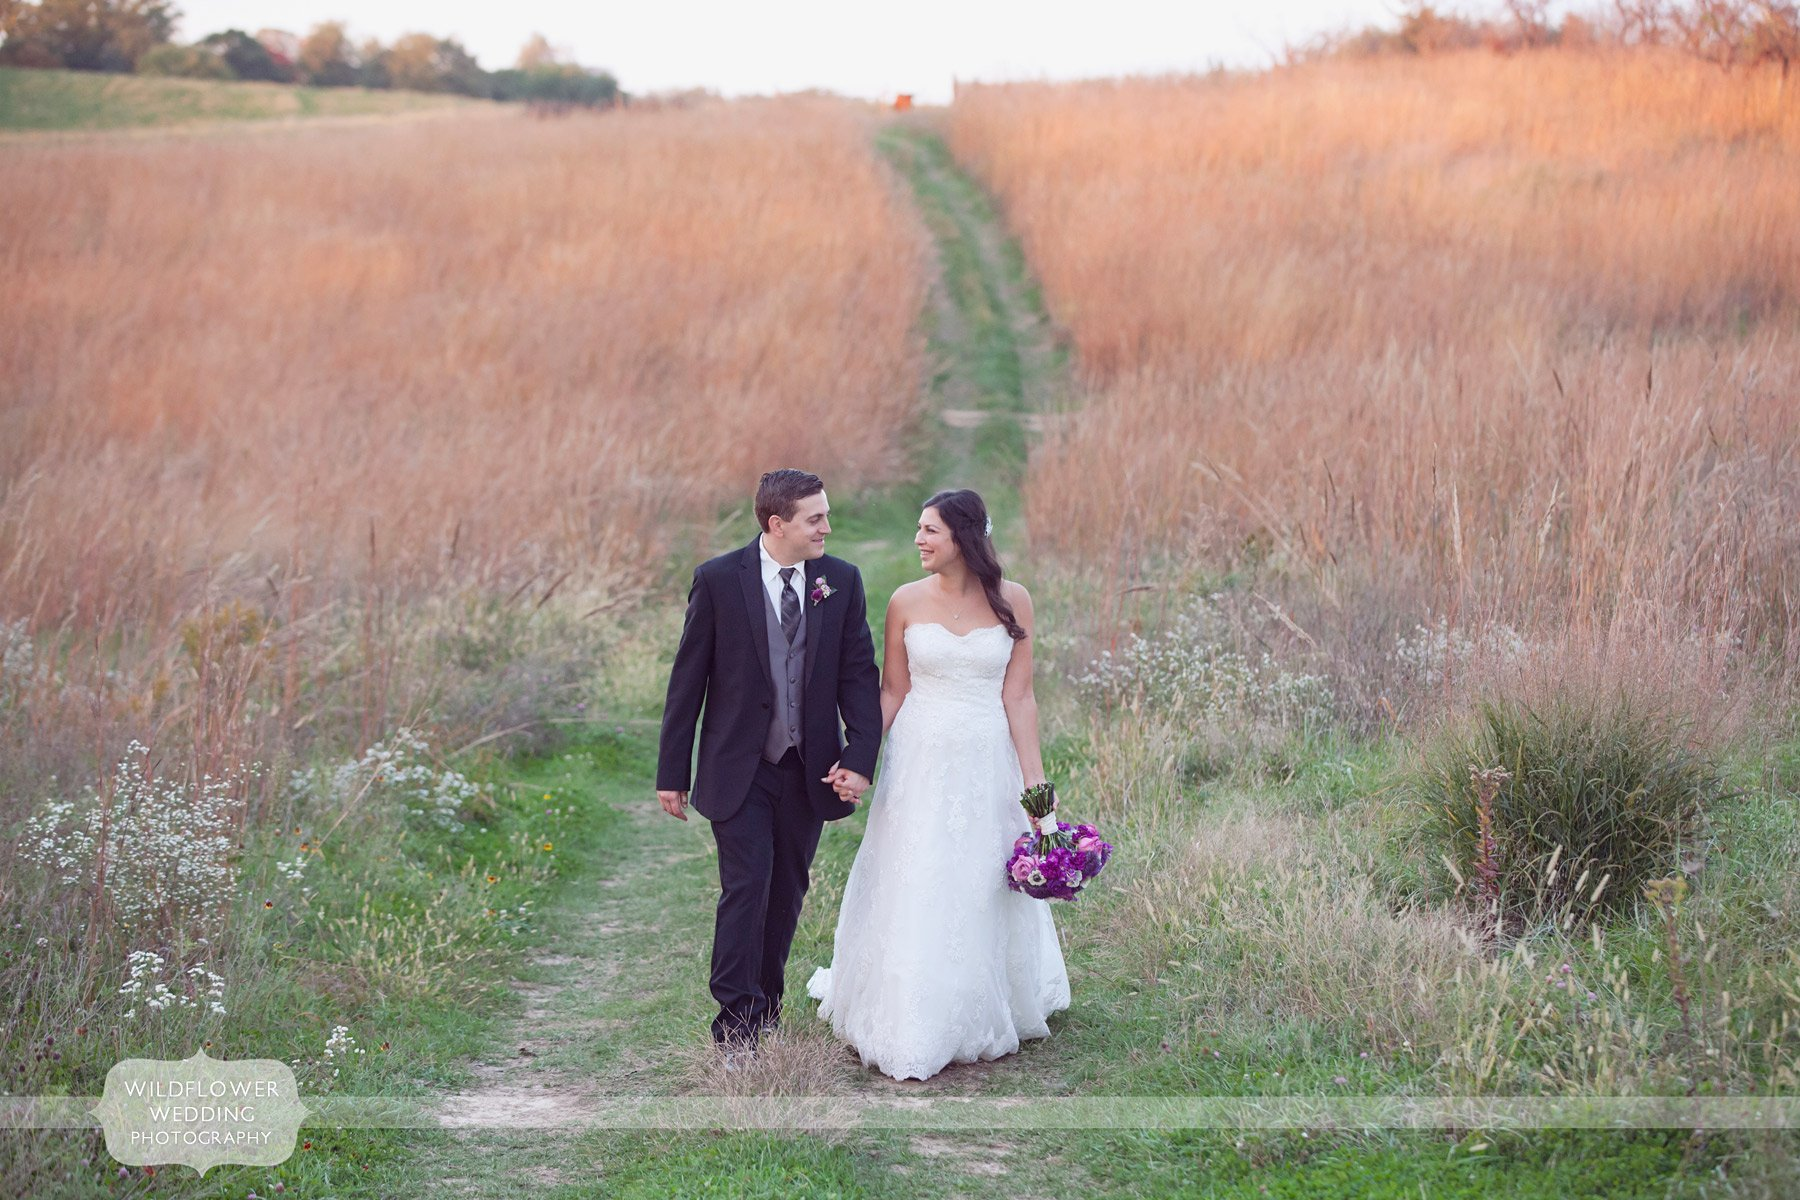 weston-red-barn-wedding-kc-mo-36